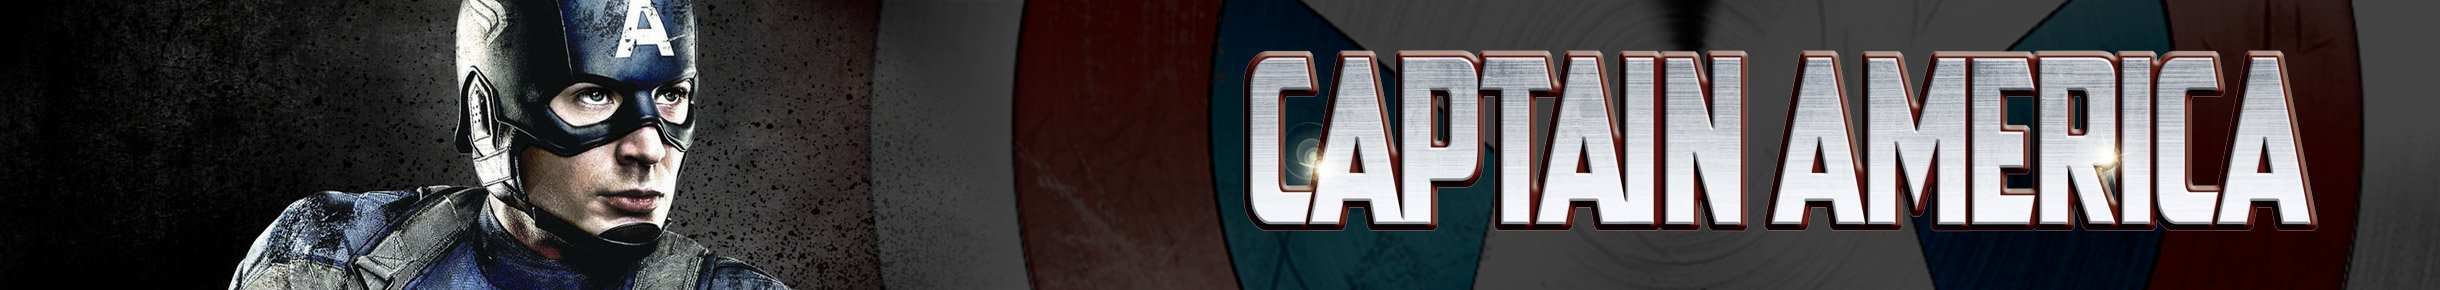 Captain America Watches Banner